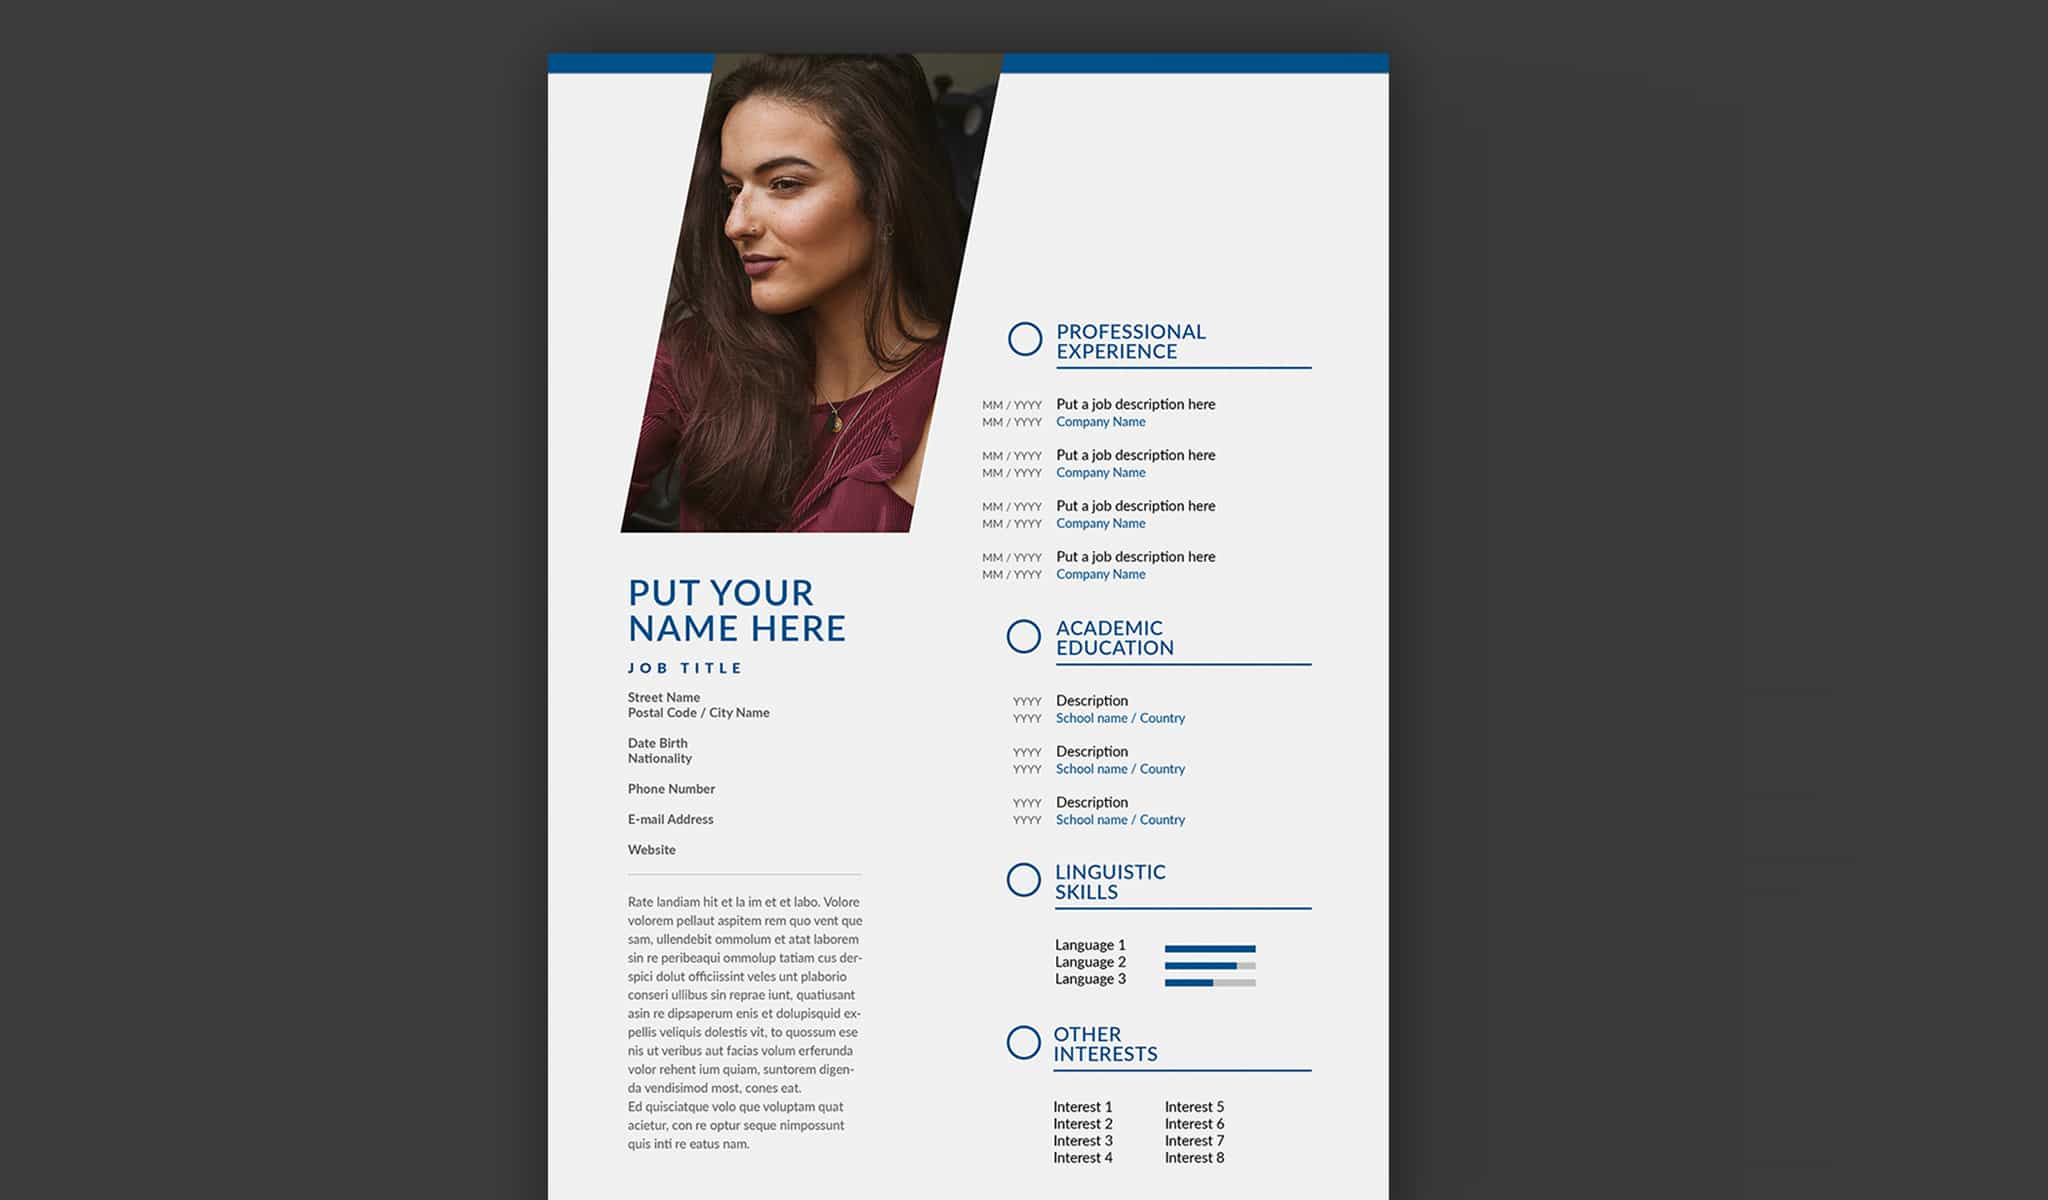 Resume Layout with Grey and Blue Accents